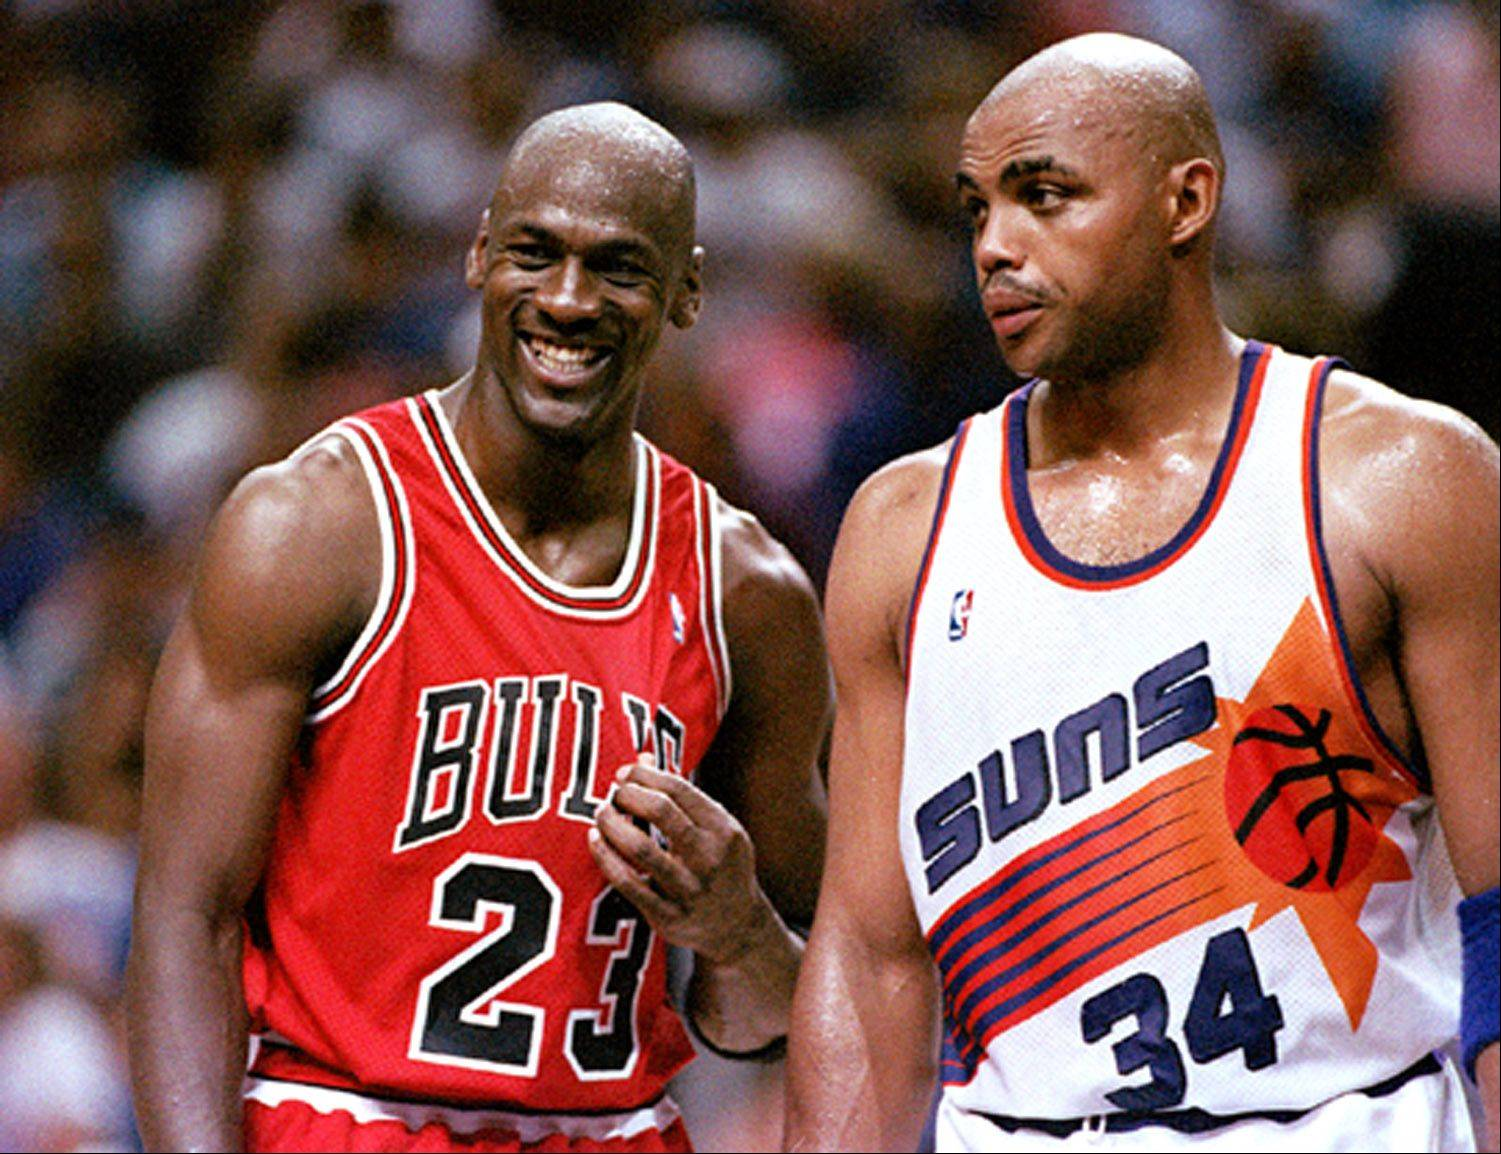 Michael Jordan and Charles Barkley during the playoffs.